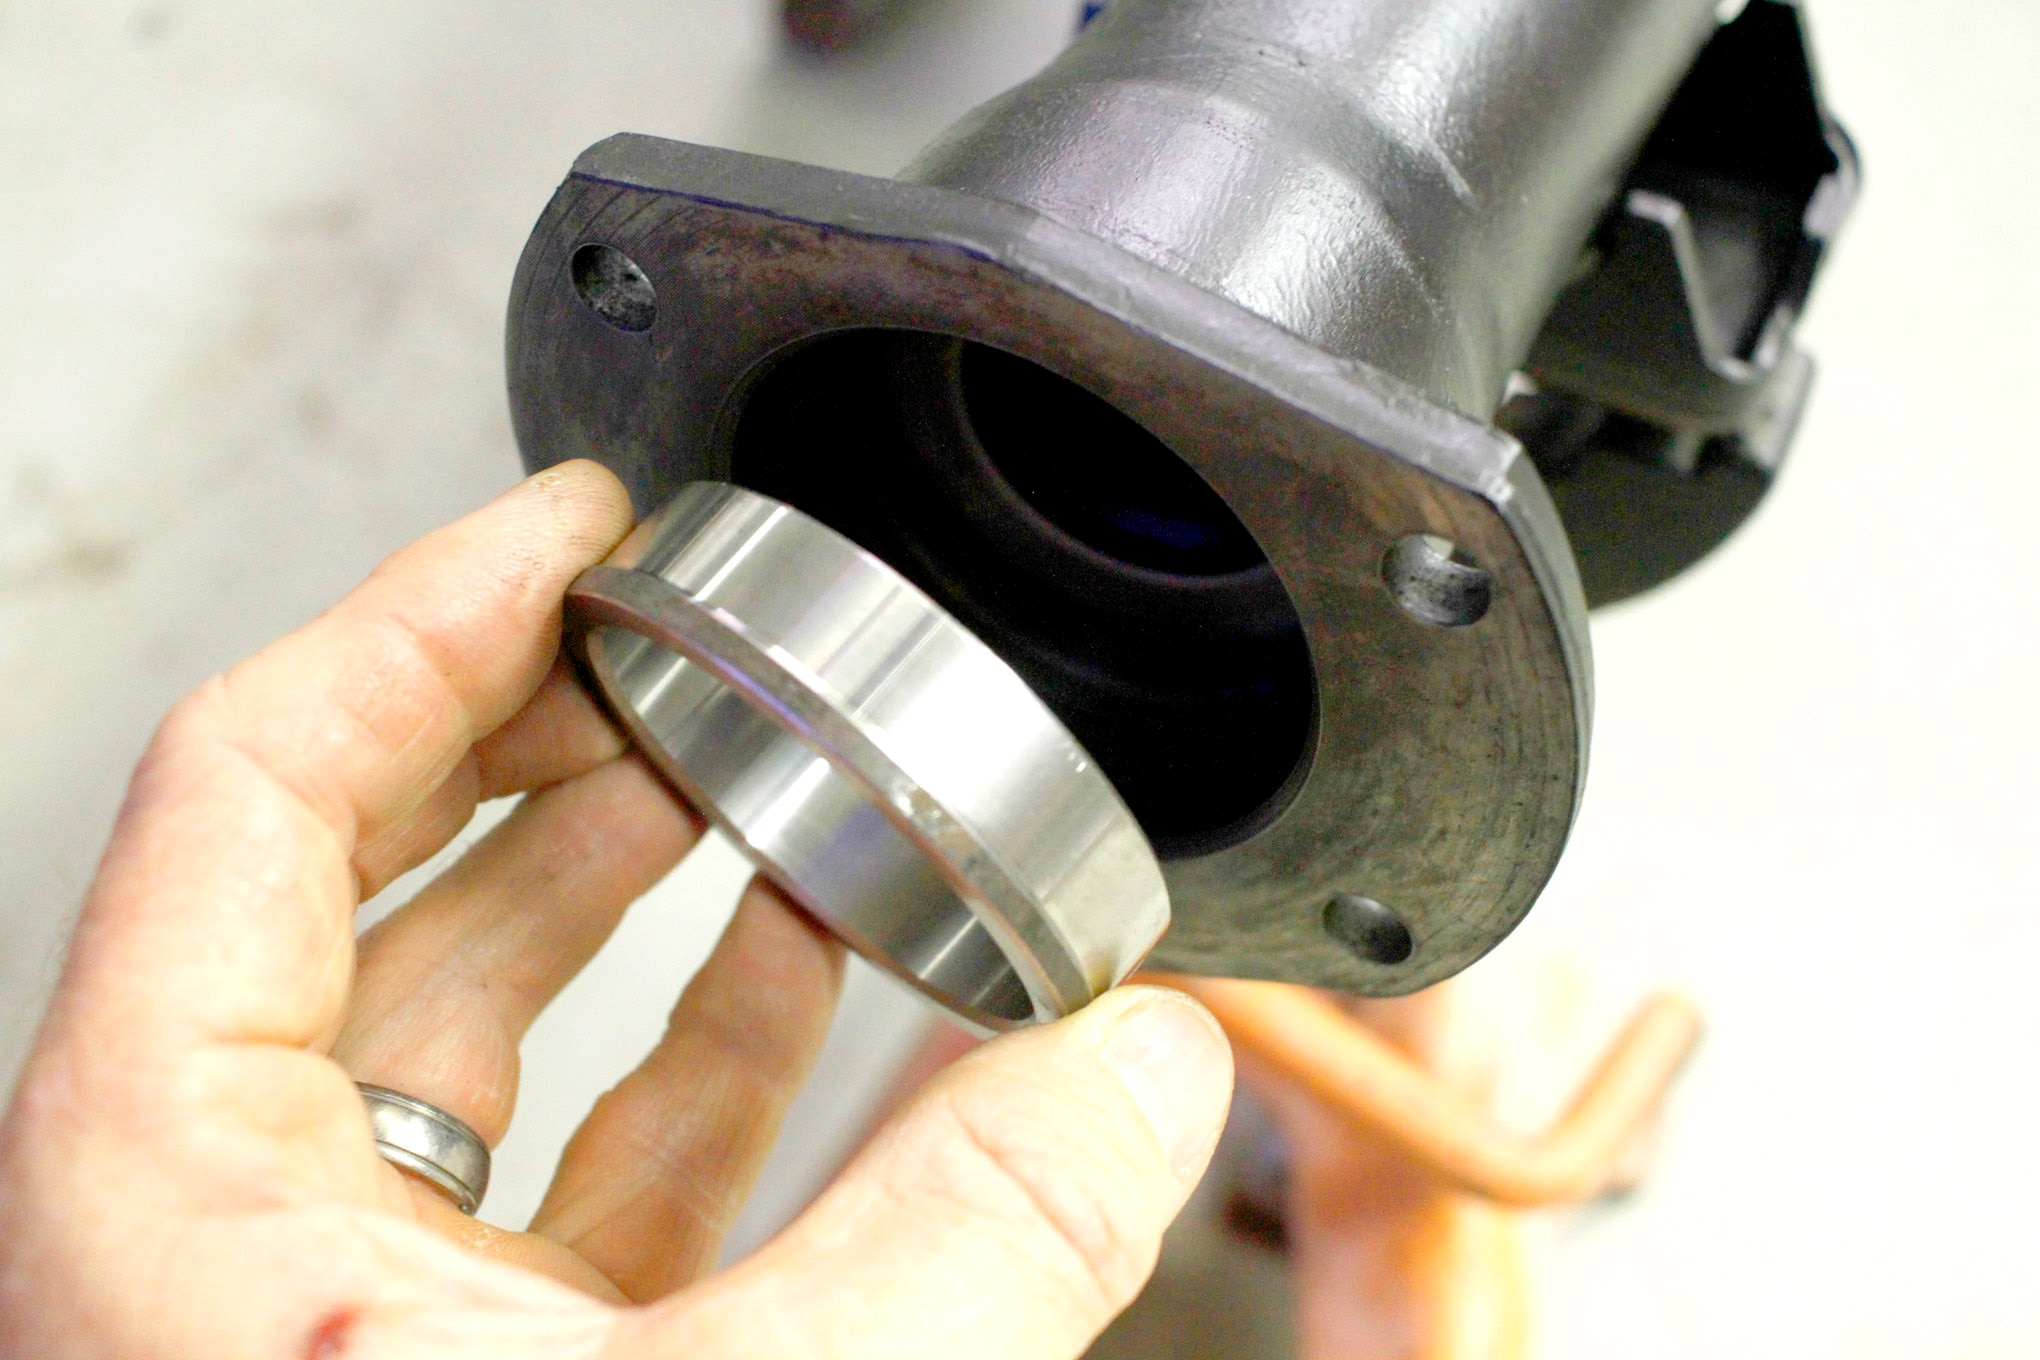 Steel bearing spacer rings included in the kit slip into the housing and seat up against each inner seal.